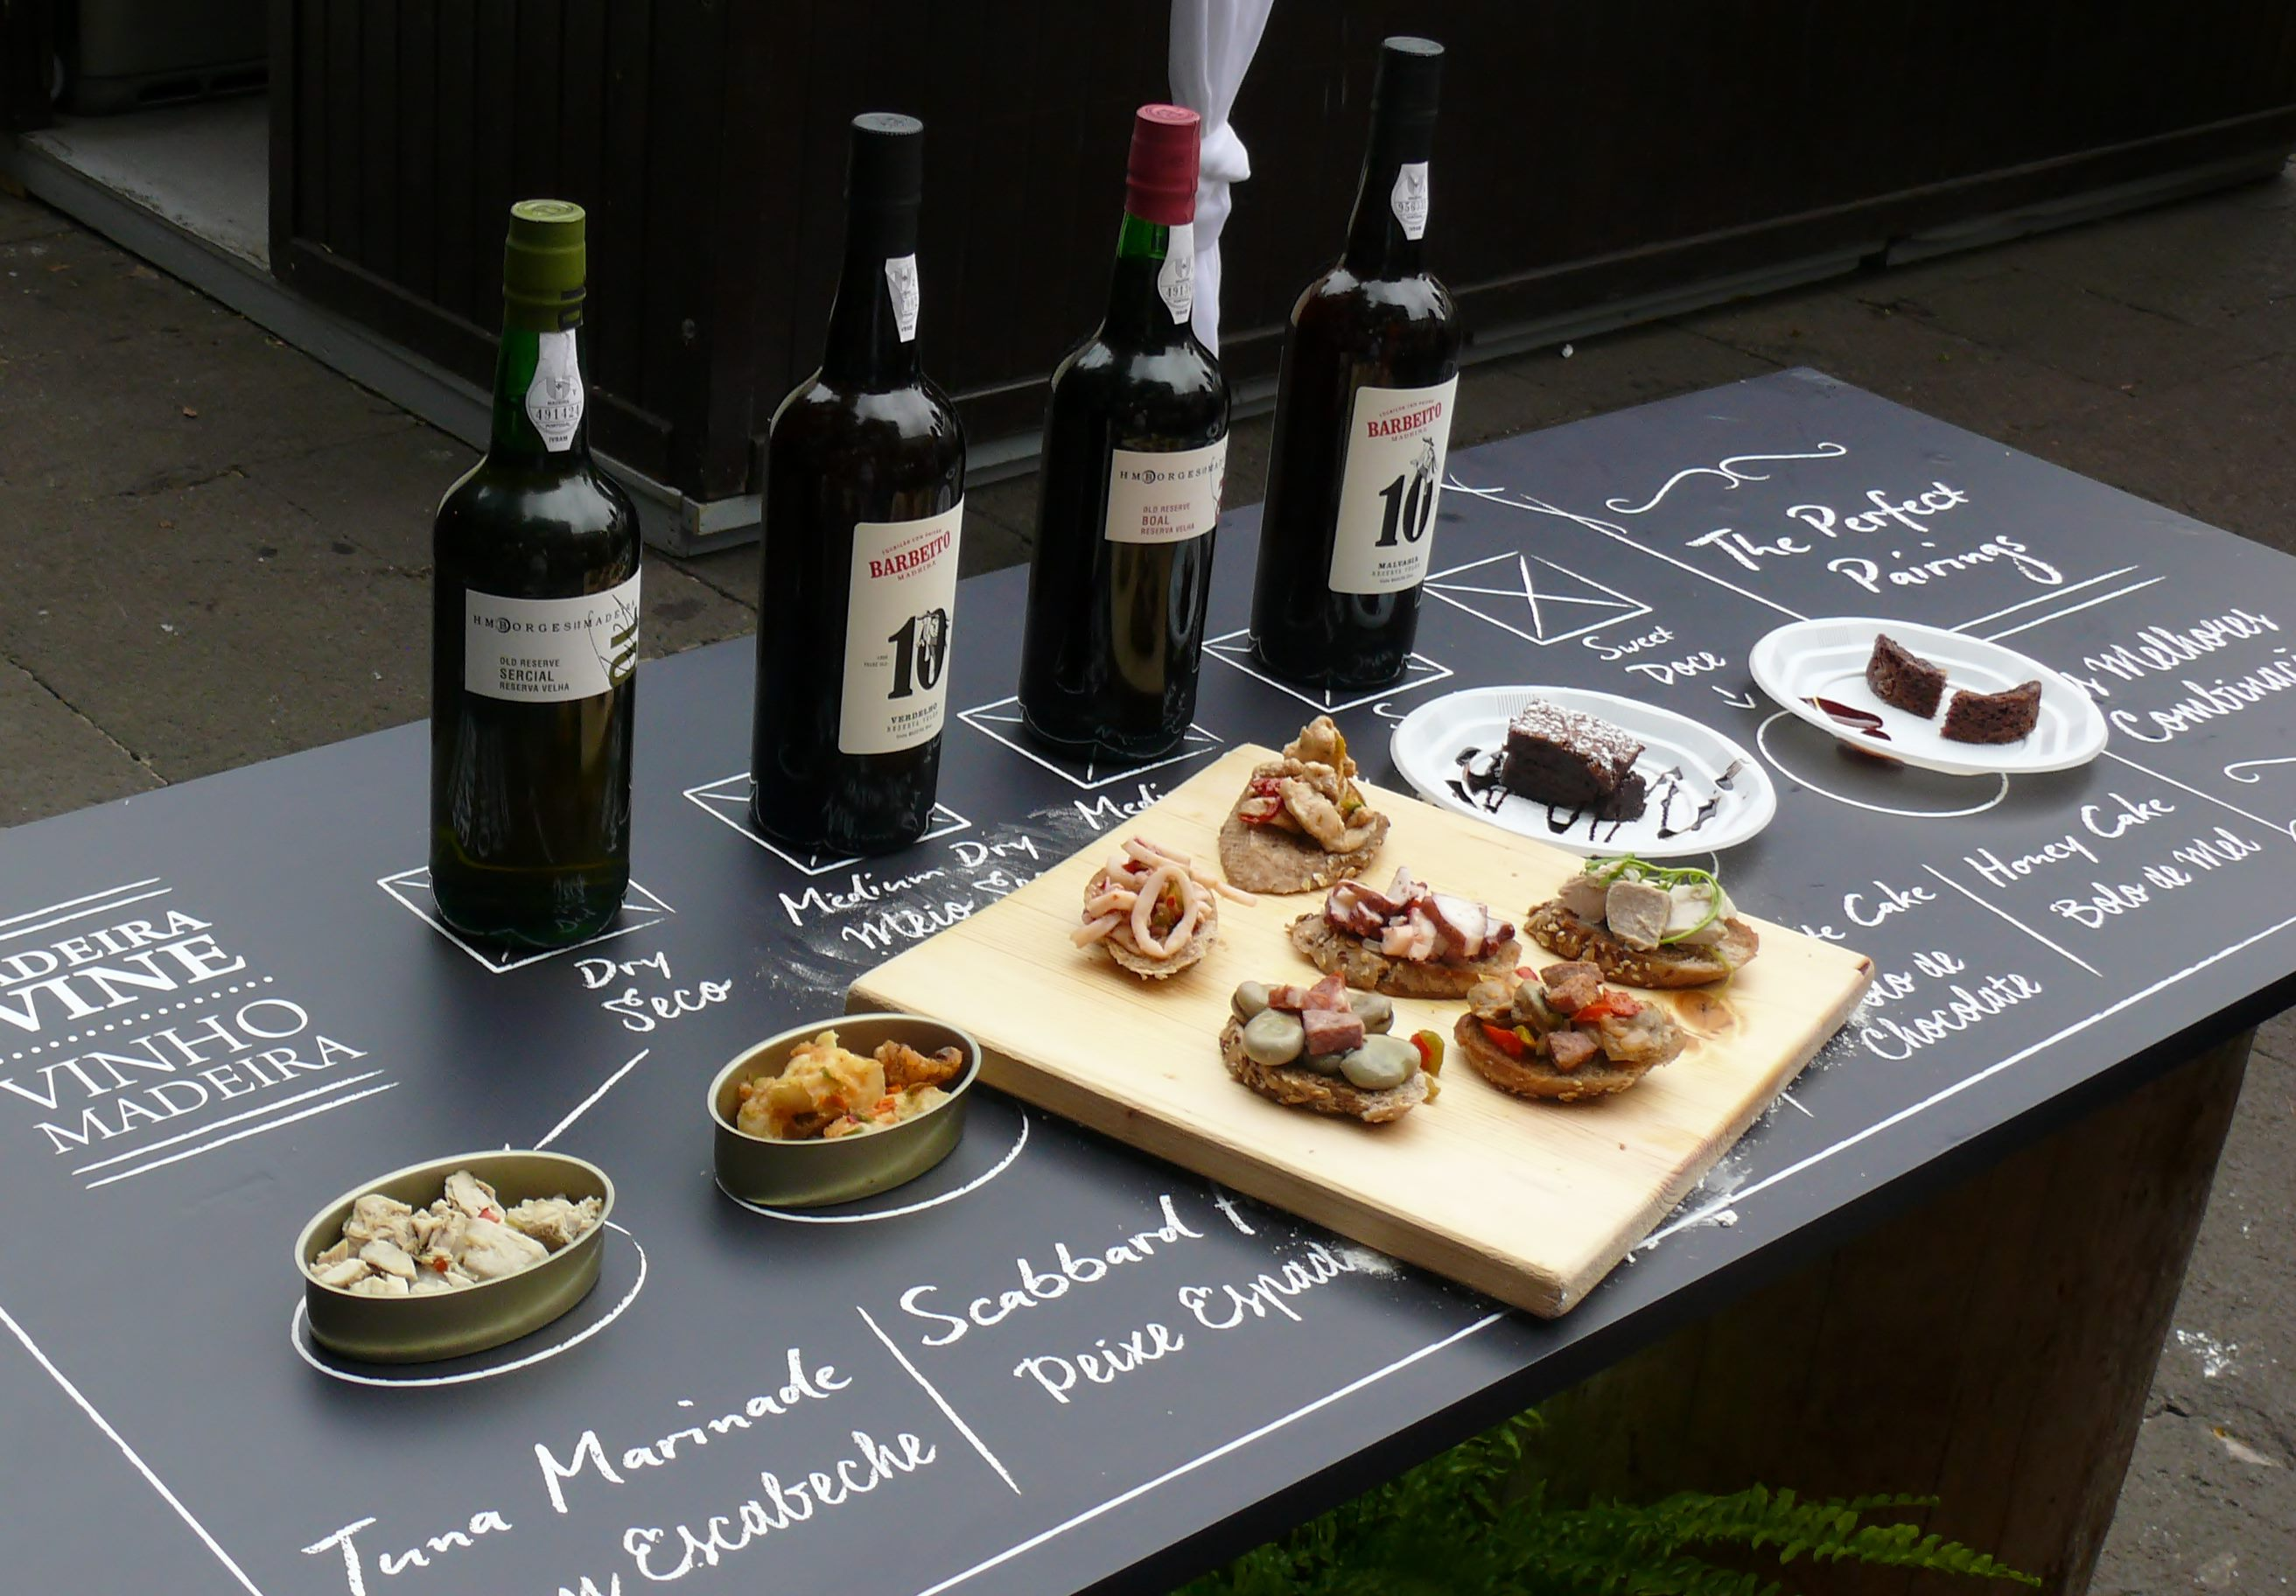 Madeira wine and food pairing